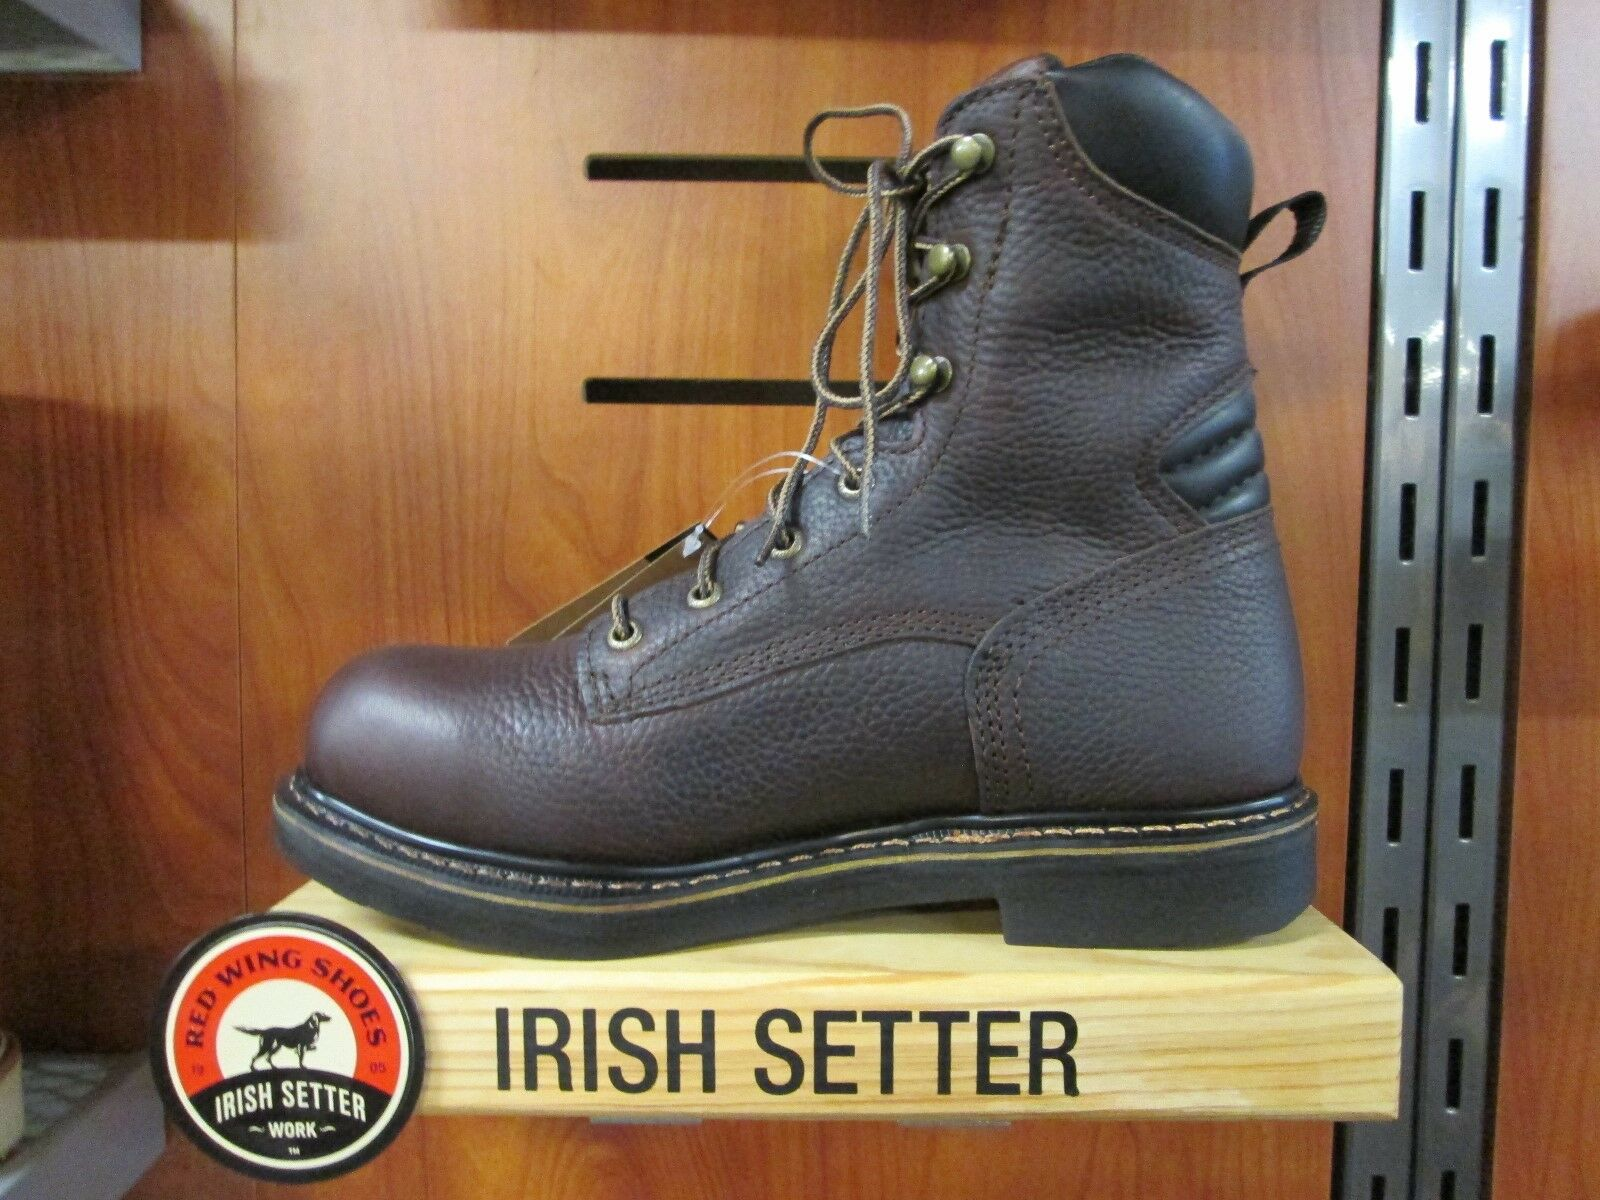 rojo Wing Irish Setter 8  Workbota - 83803 Farmington Soft Toe - 12 D